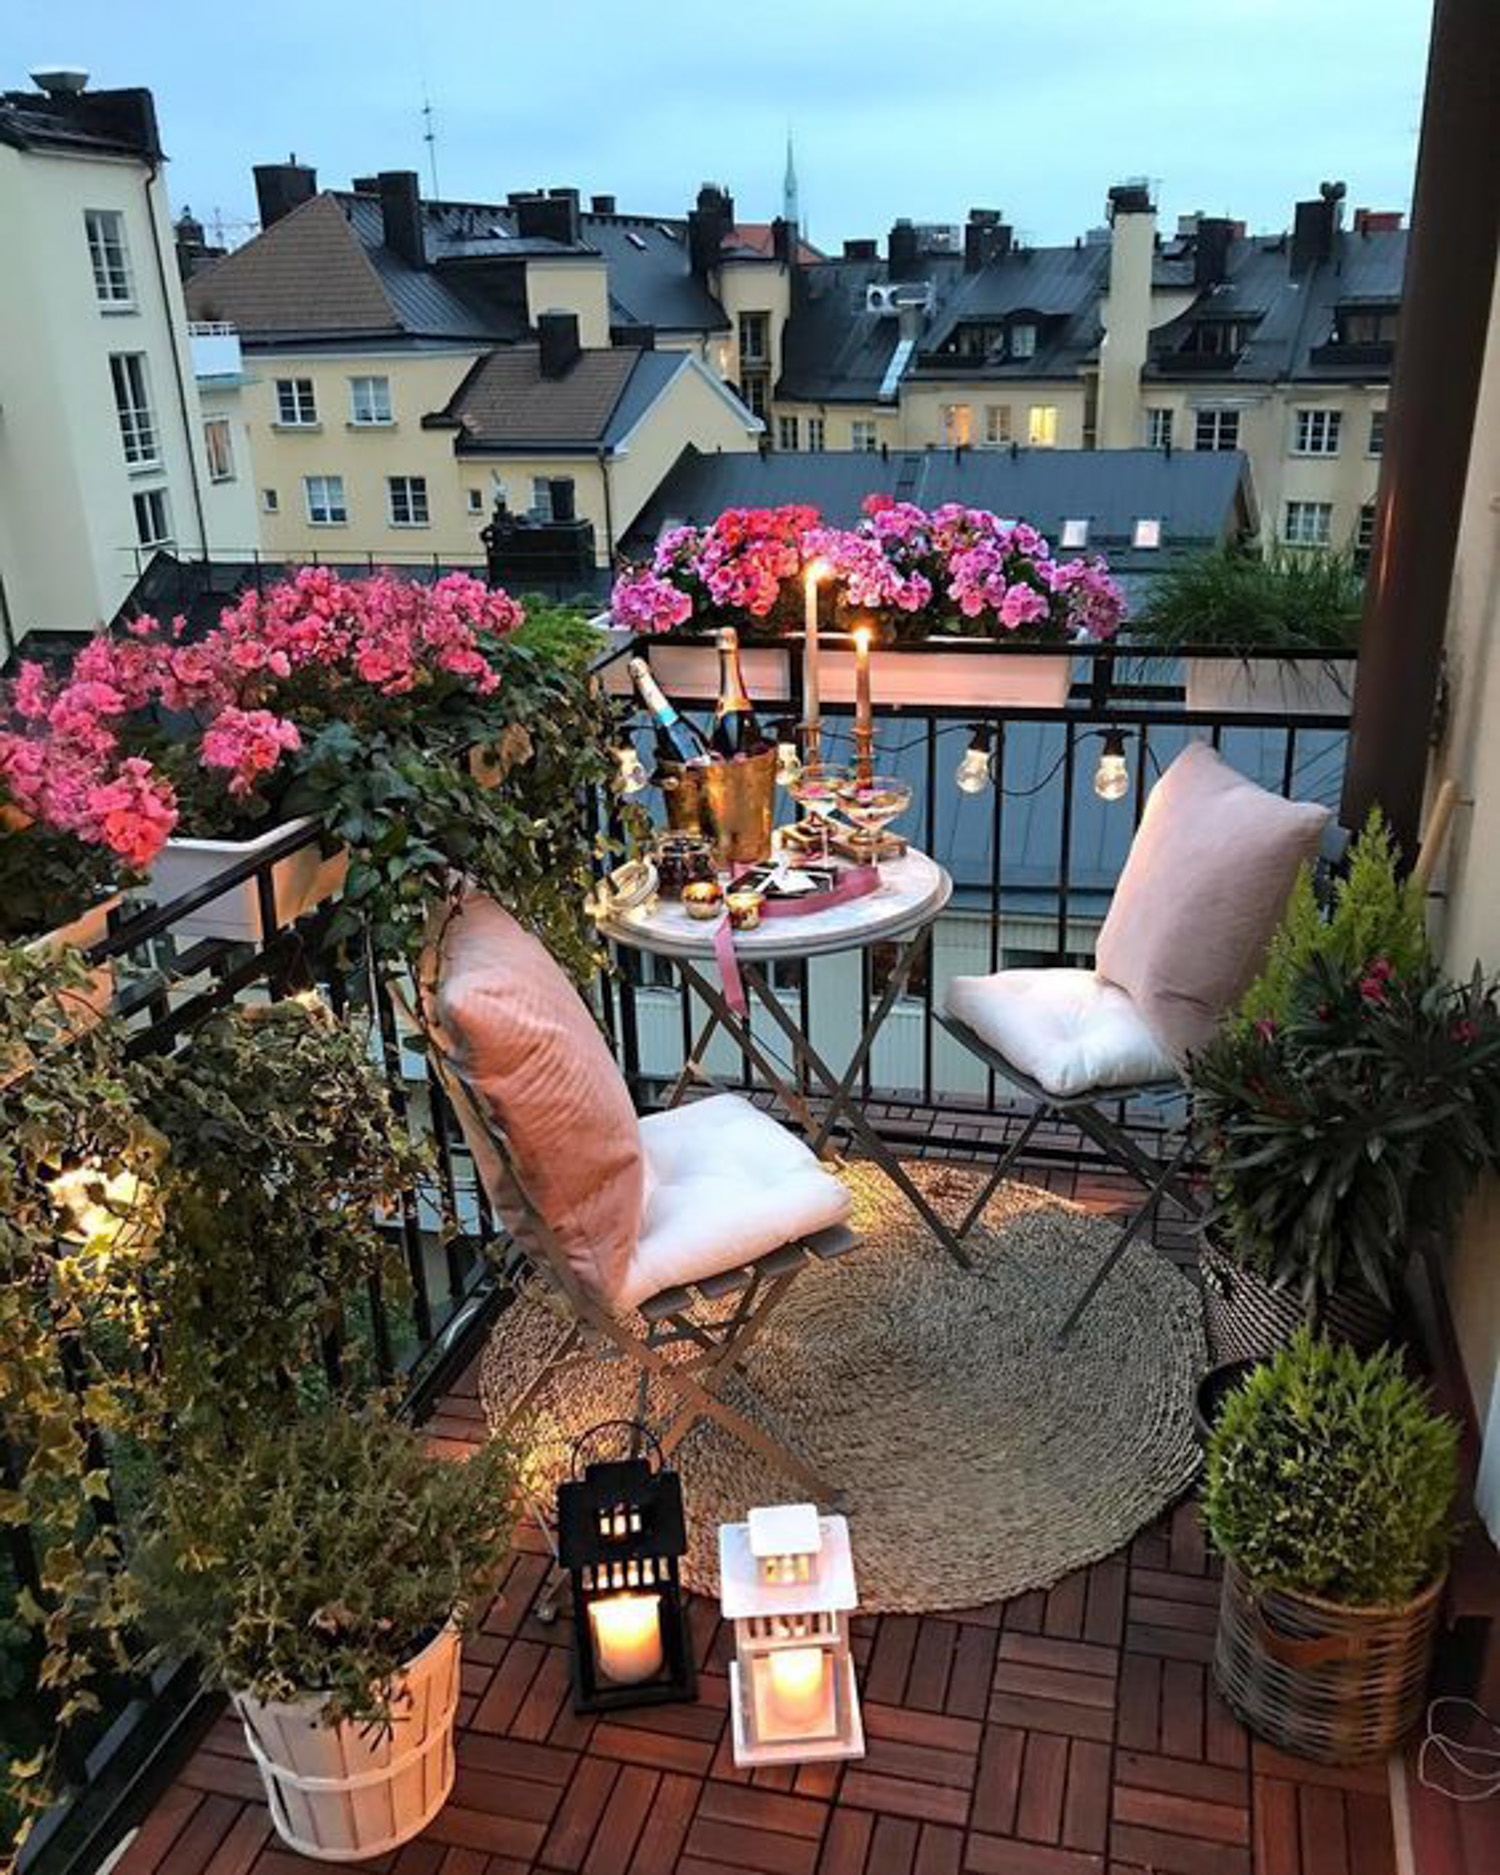 Small Balcony Apartment Living Room: Inspiration For Small Apartment Balconies In The City